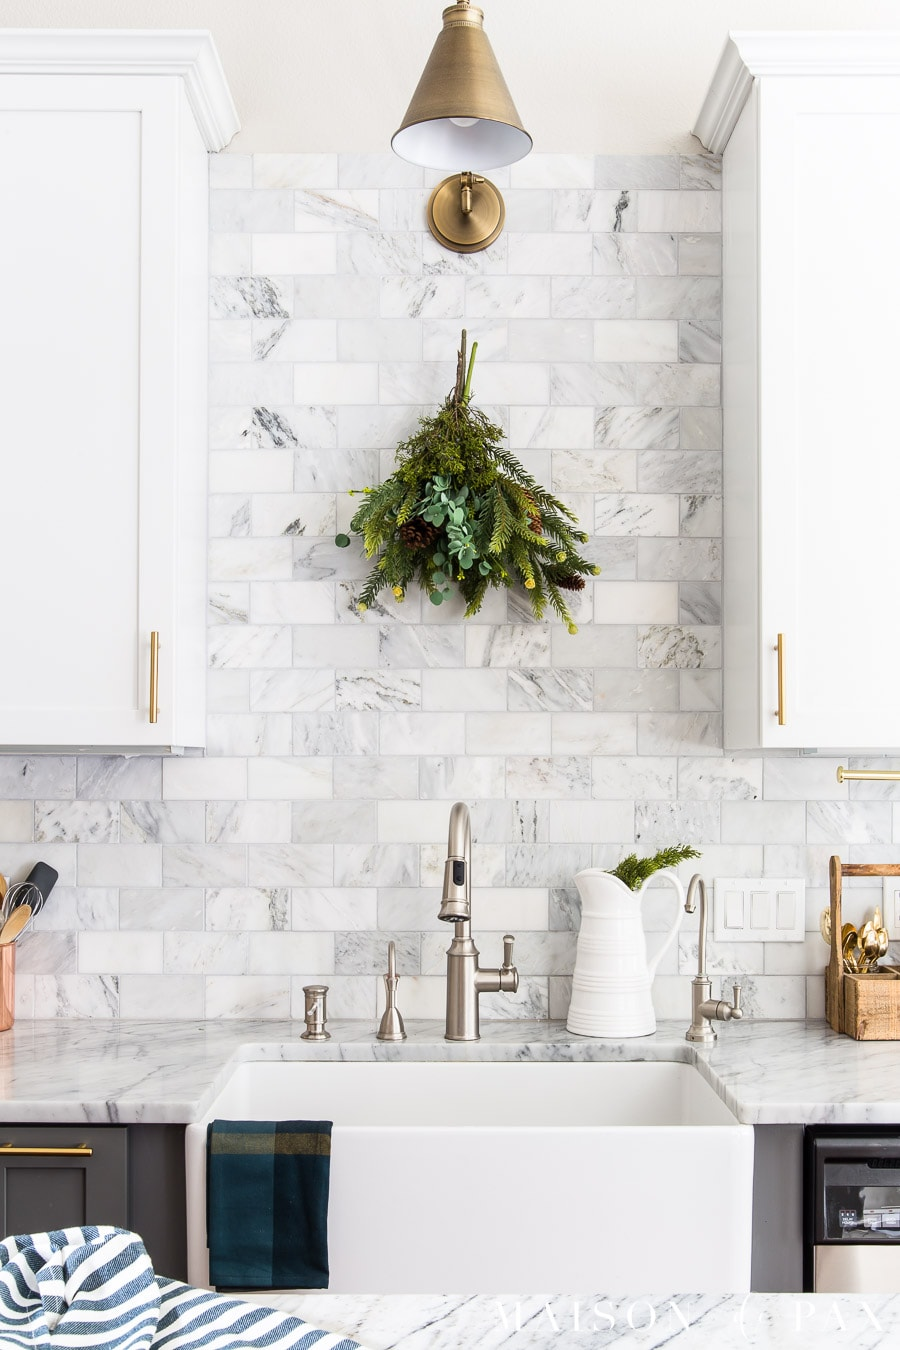 Kitchen Decor Christmas Kitchen Decor Natural Fresh Simple Maison De Pax